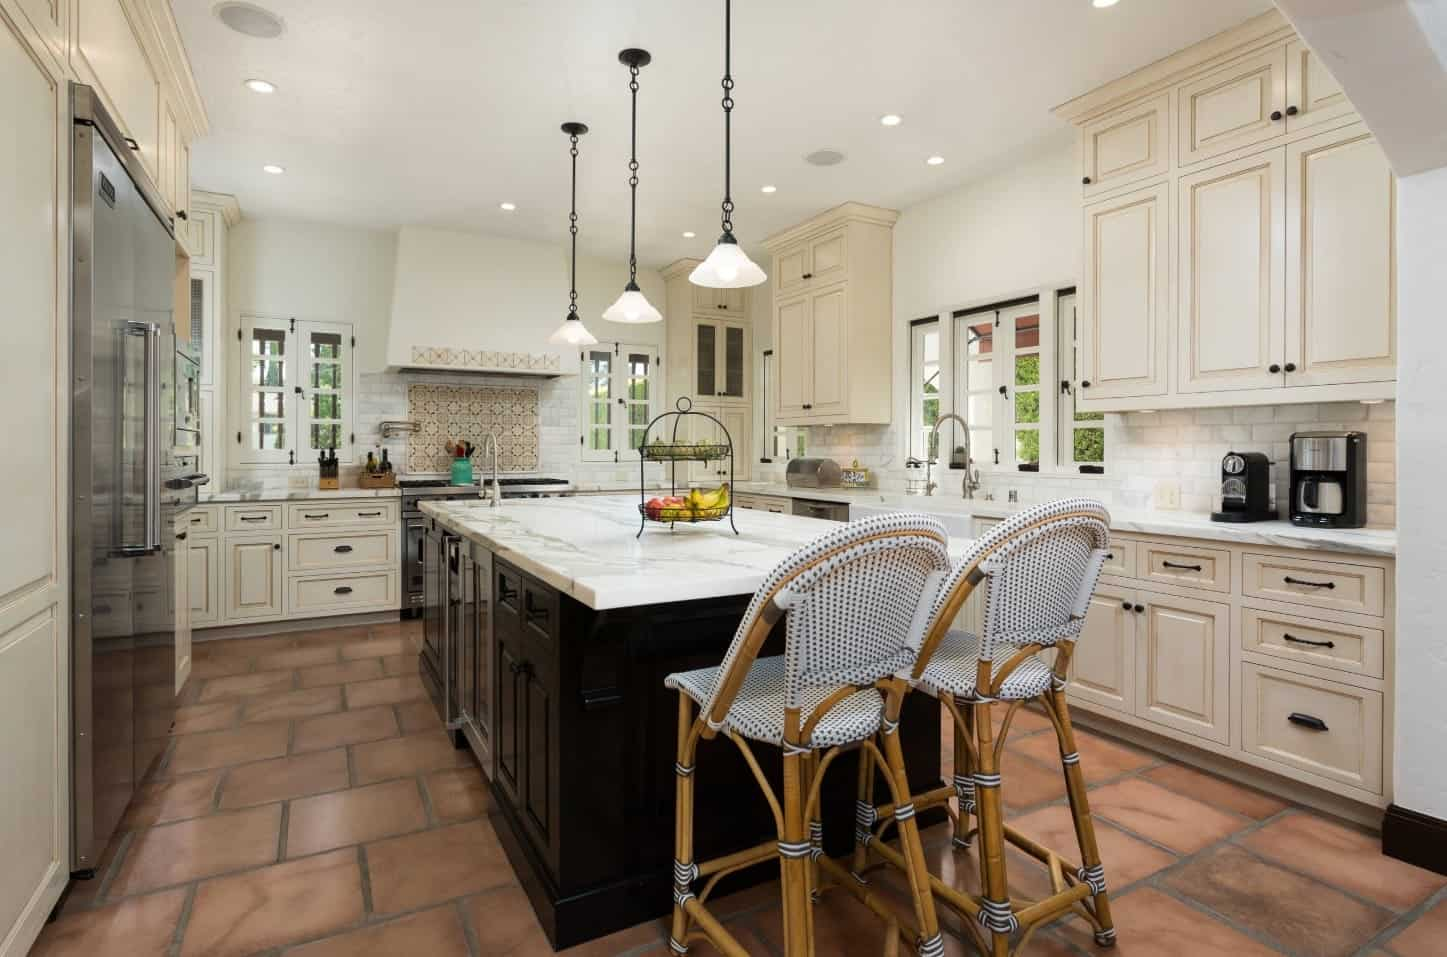 The off-white hue of the shaker cabinets and drawers of the L-shaped peninsula complements the white walls and white ceiling. This ceiling hangs pendant lights over the white marble countertop of the dark wooden kitchen island that stands out against the terracotta flooring tiles.